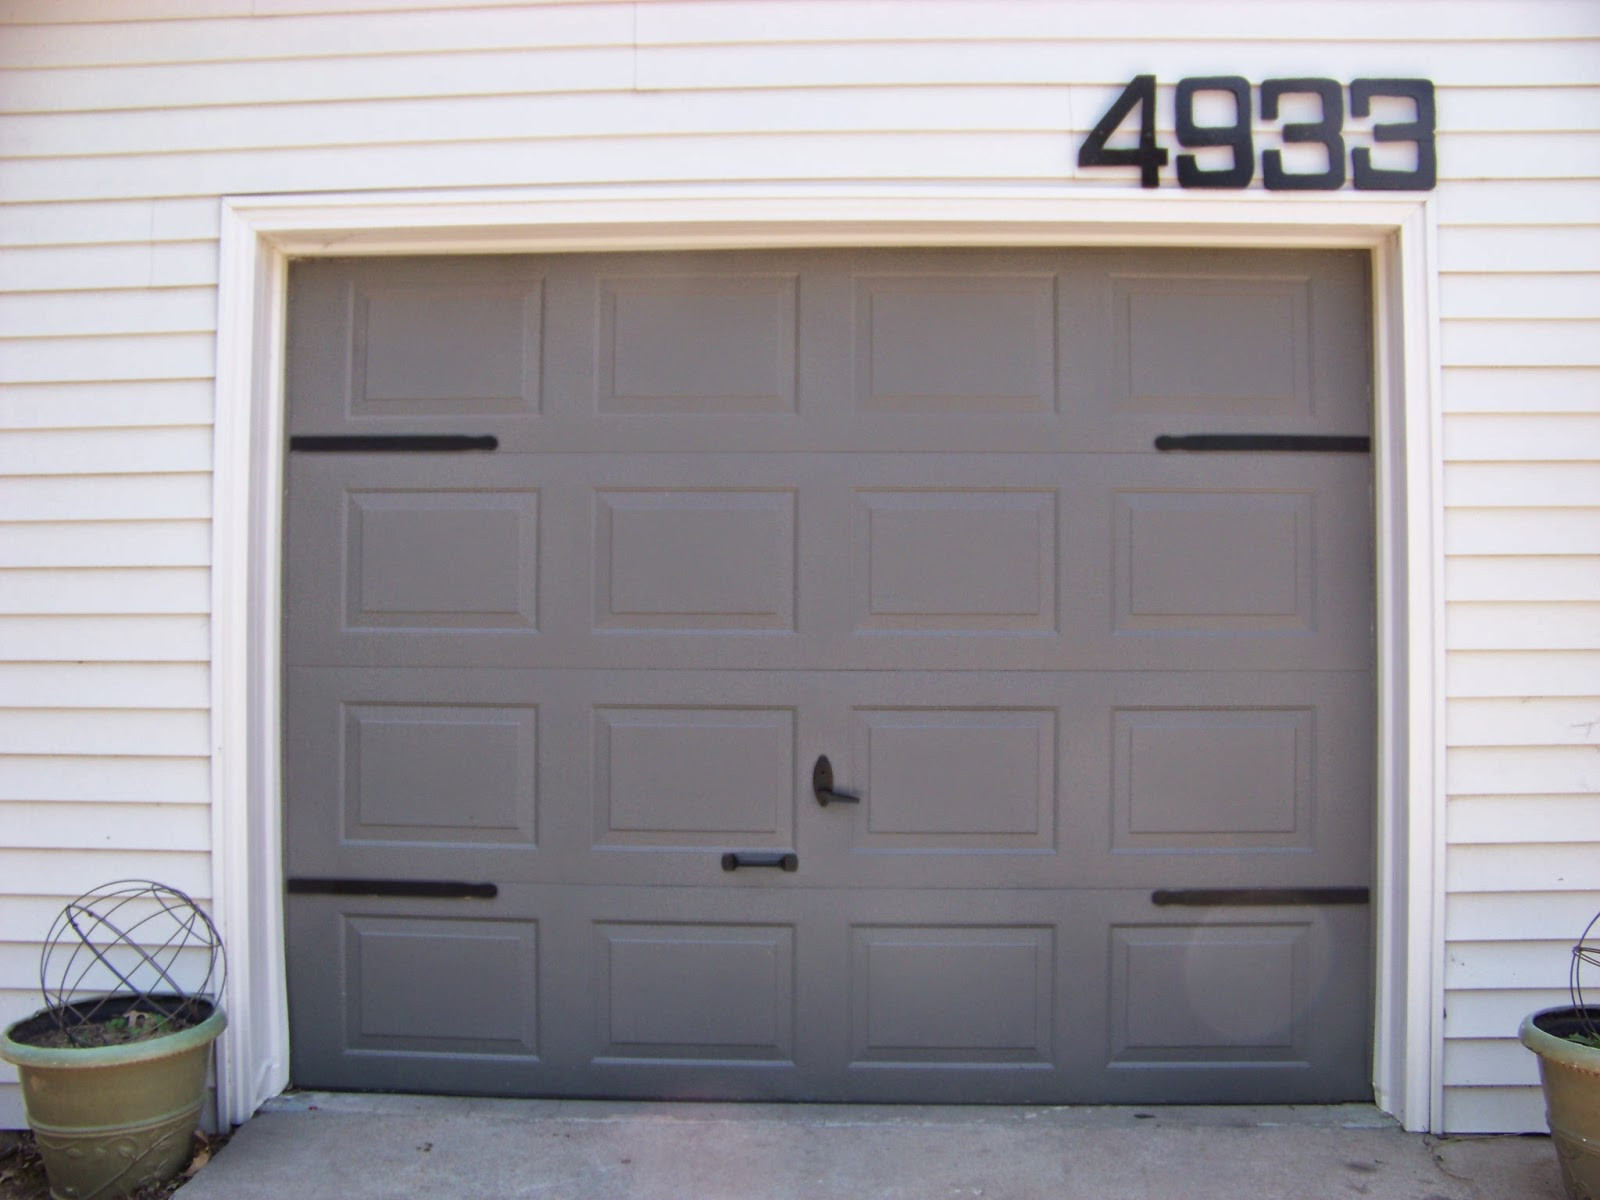 Best ideas about DIY Wood Garage Doors . Save or Pin Remodelaholic Now.